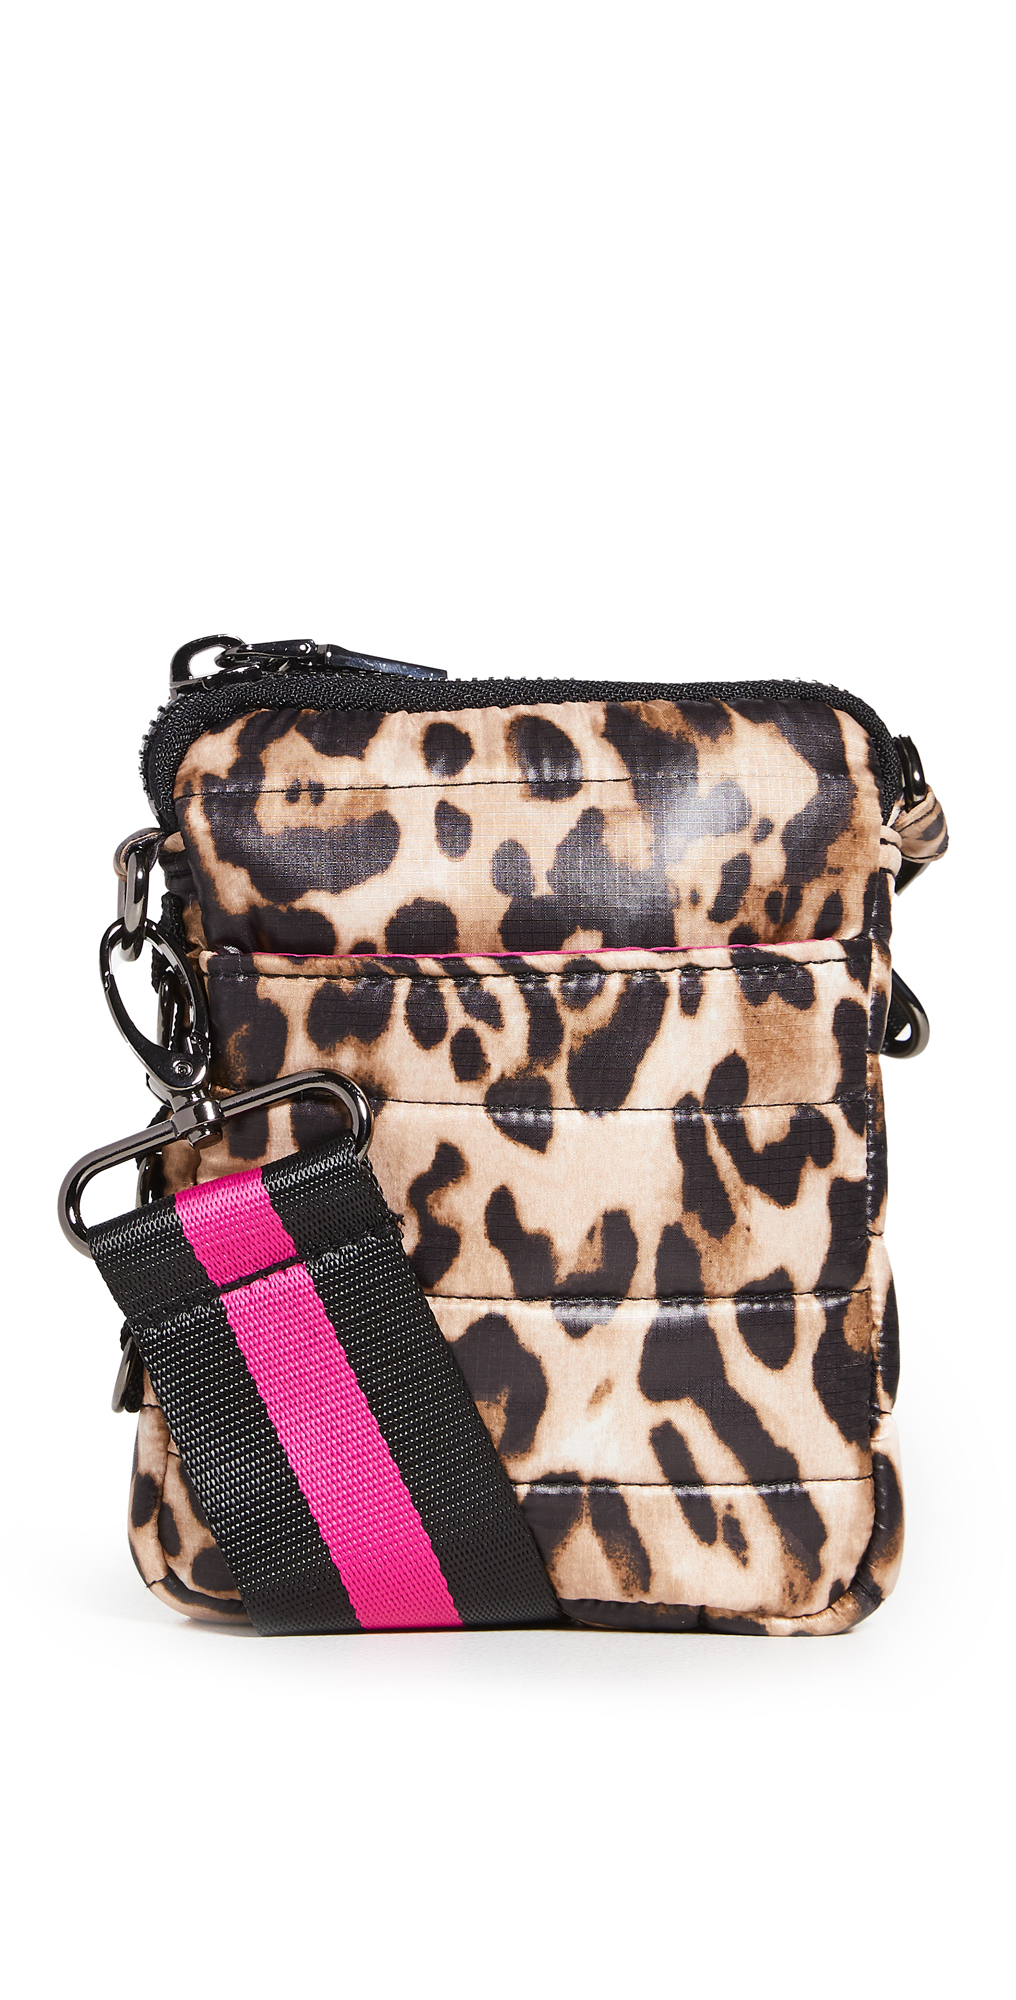 Think Royln Phone Case Crossbody Bag with 2 Straps